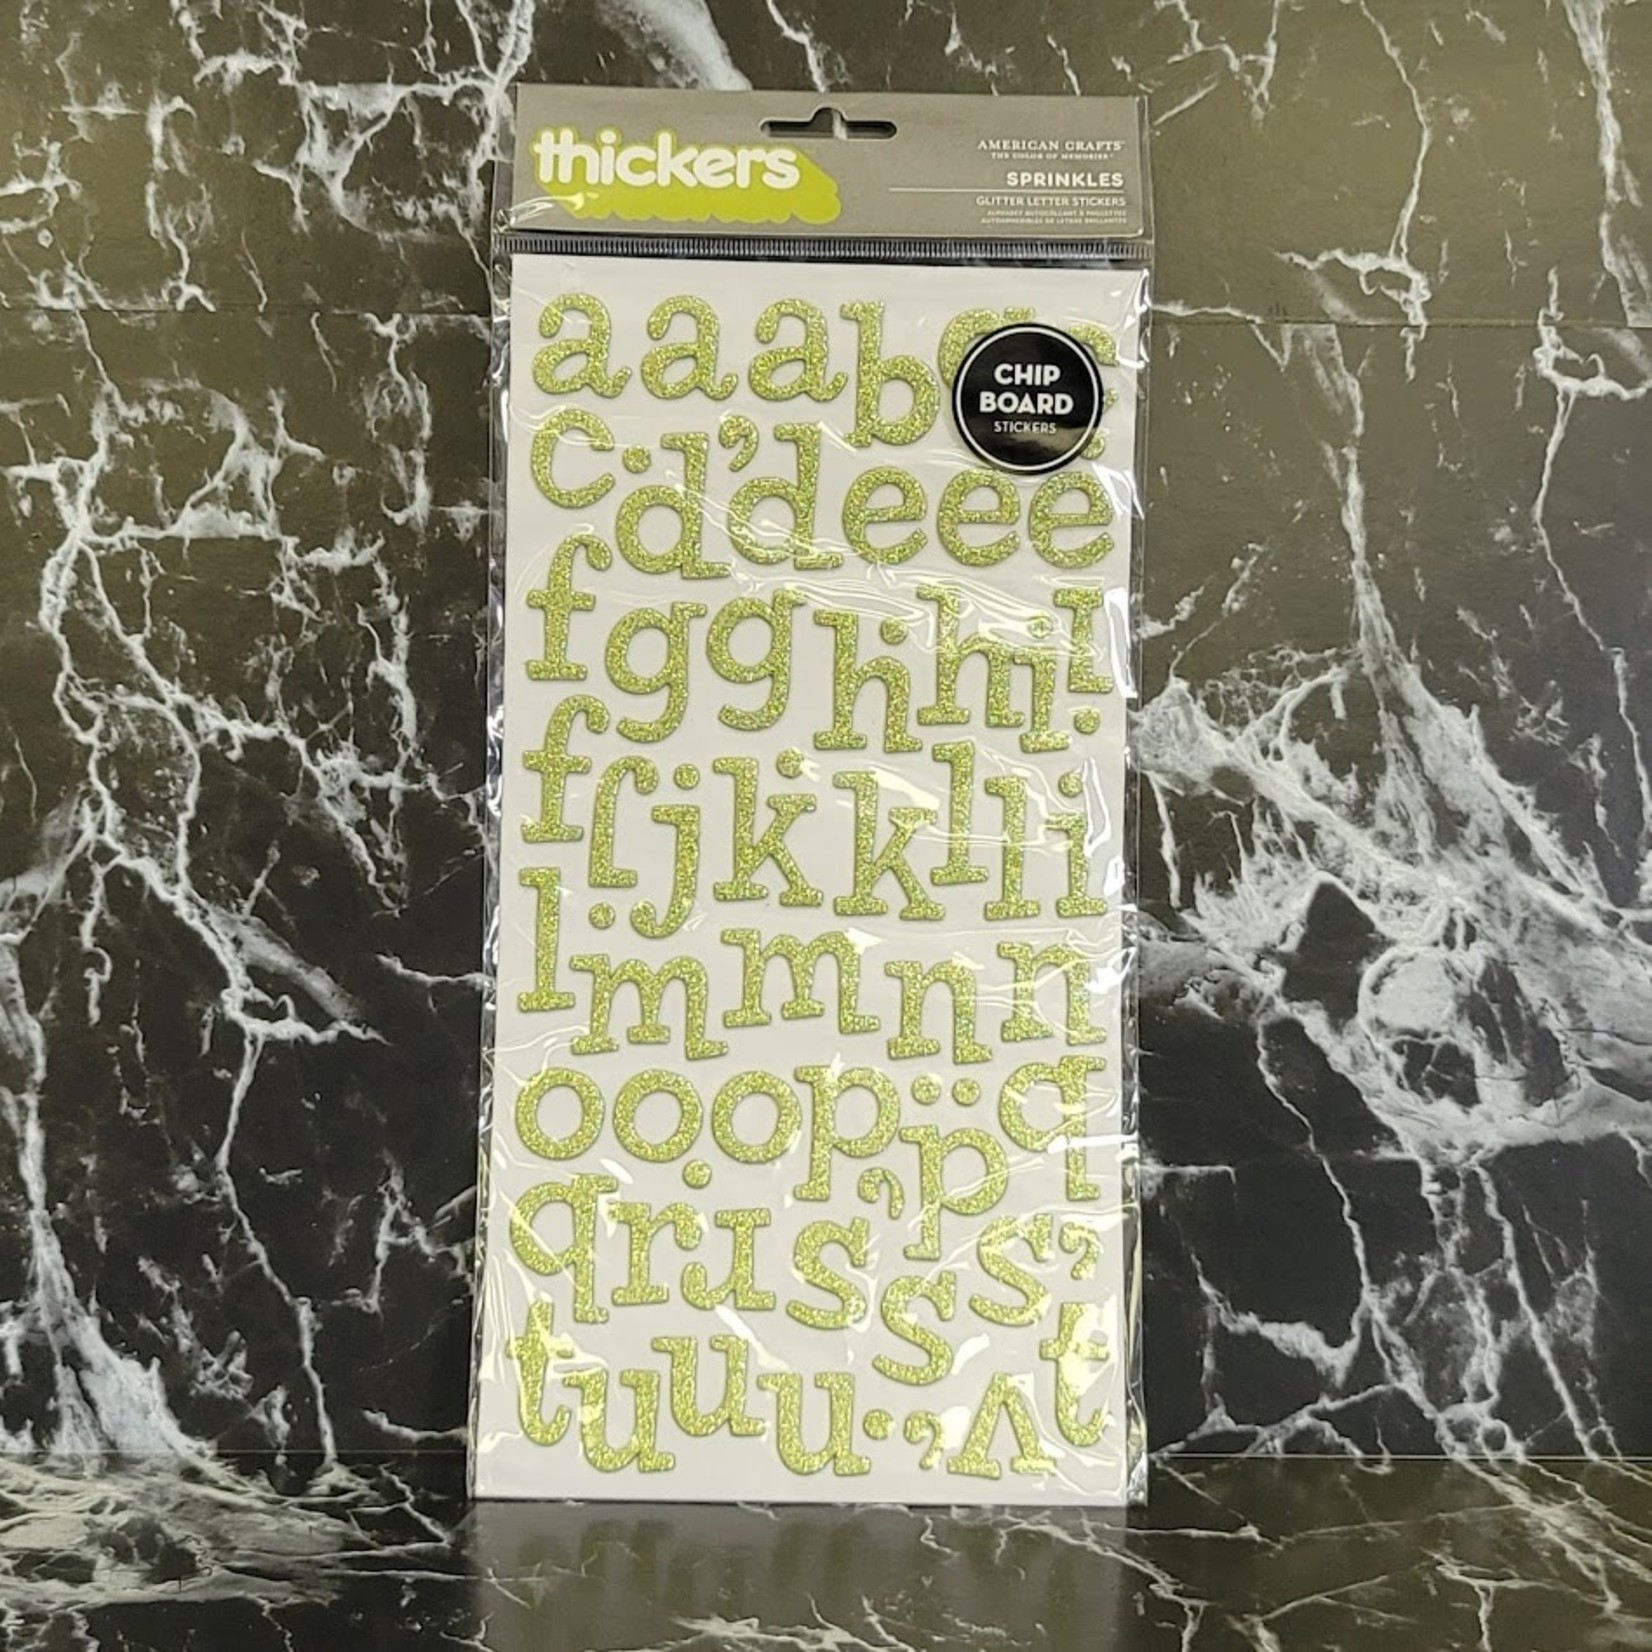 American Crafts thickers - Sprinkles - Glitter Letter Stickers - Chipboard - Green